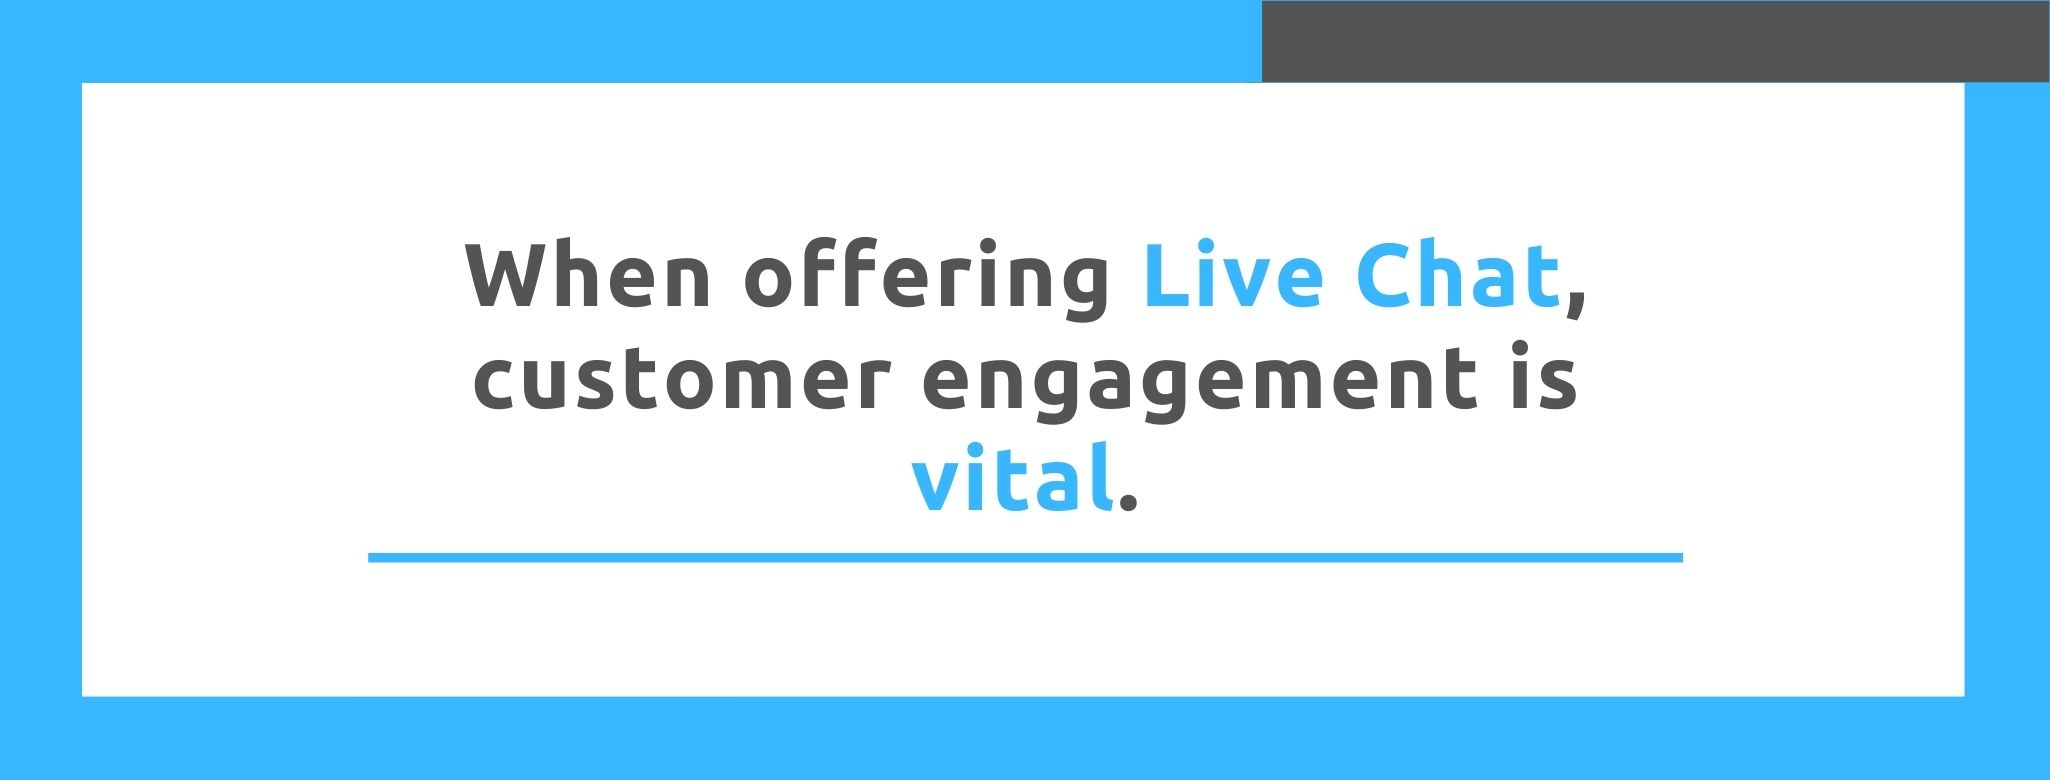 When offering Live Chat, customer engagement is vital. - Replyco